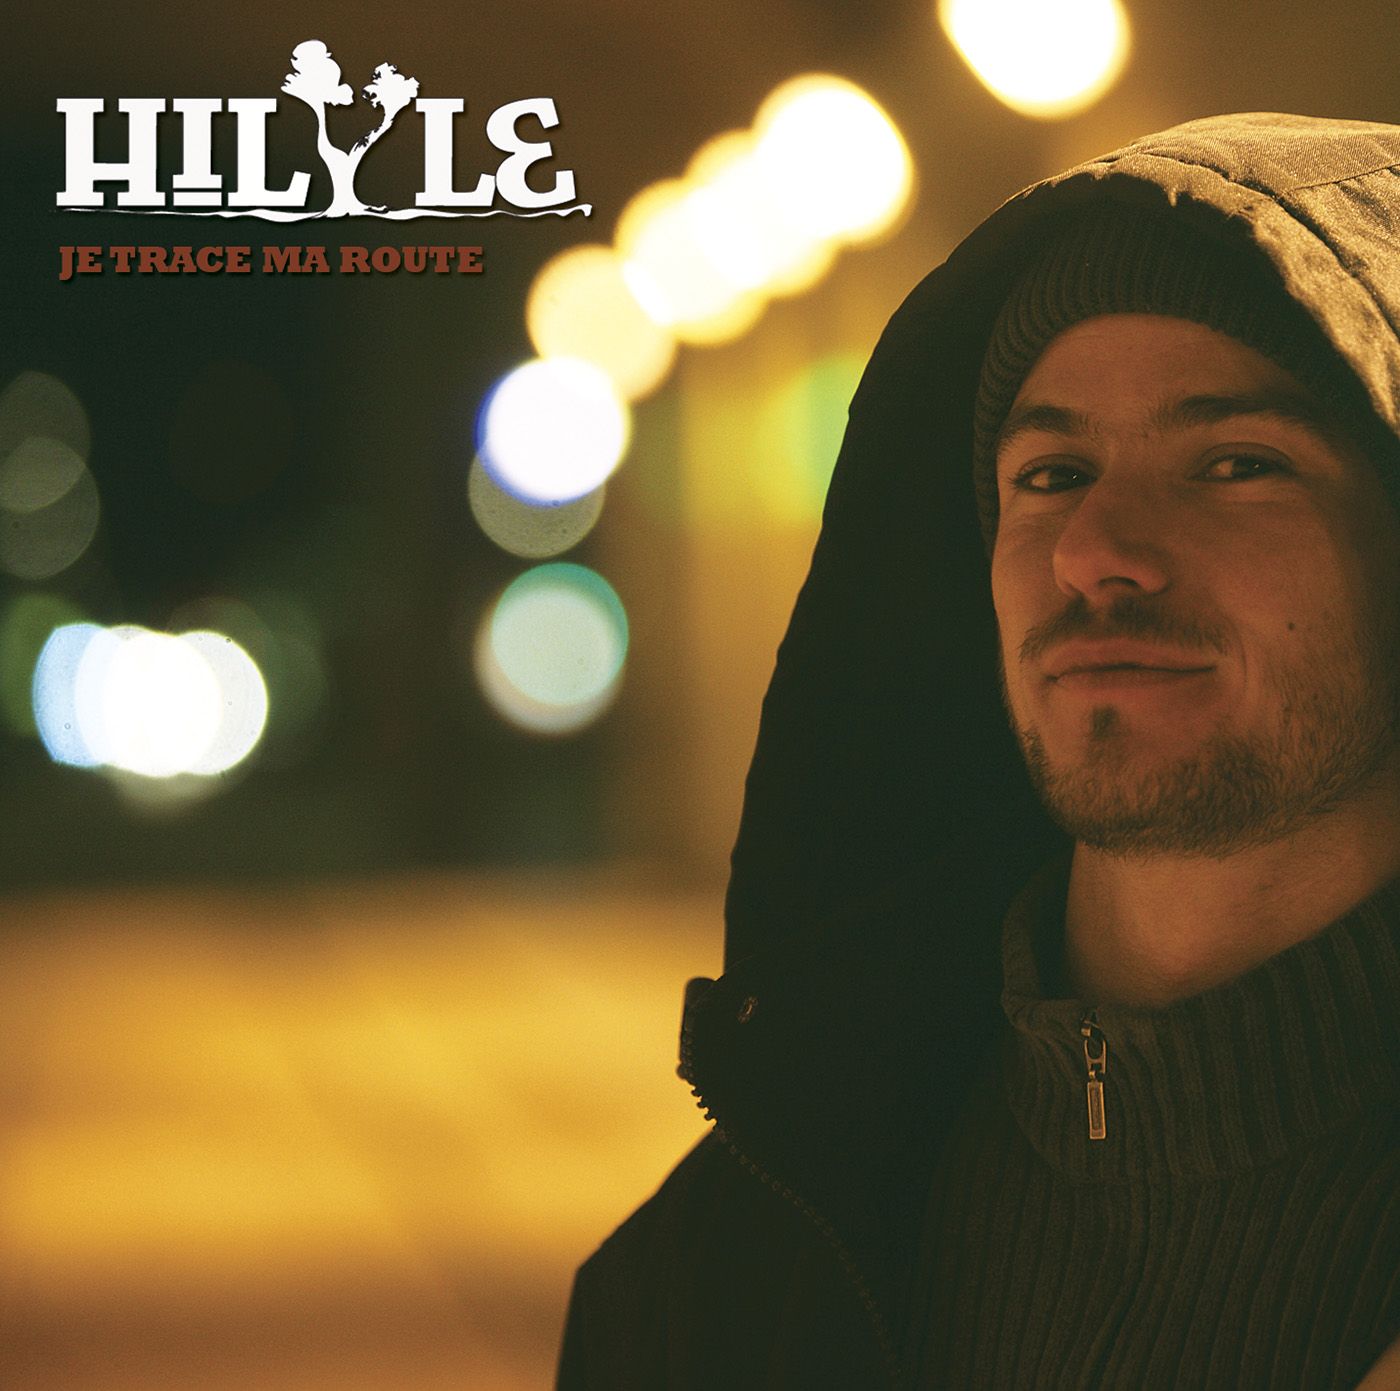 Hilyle-front-cover-CD